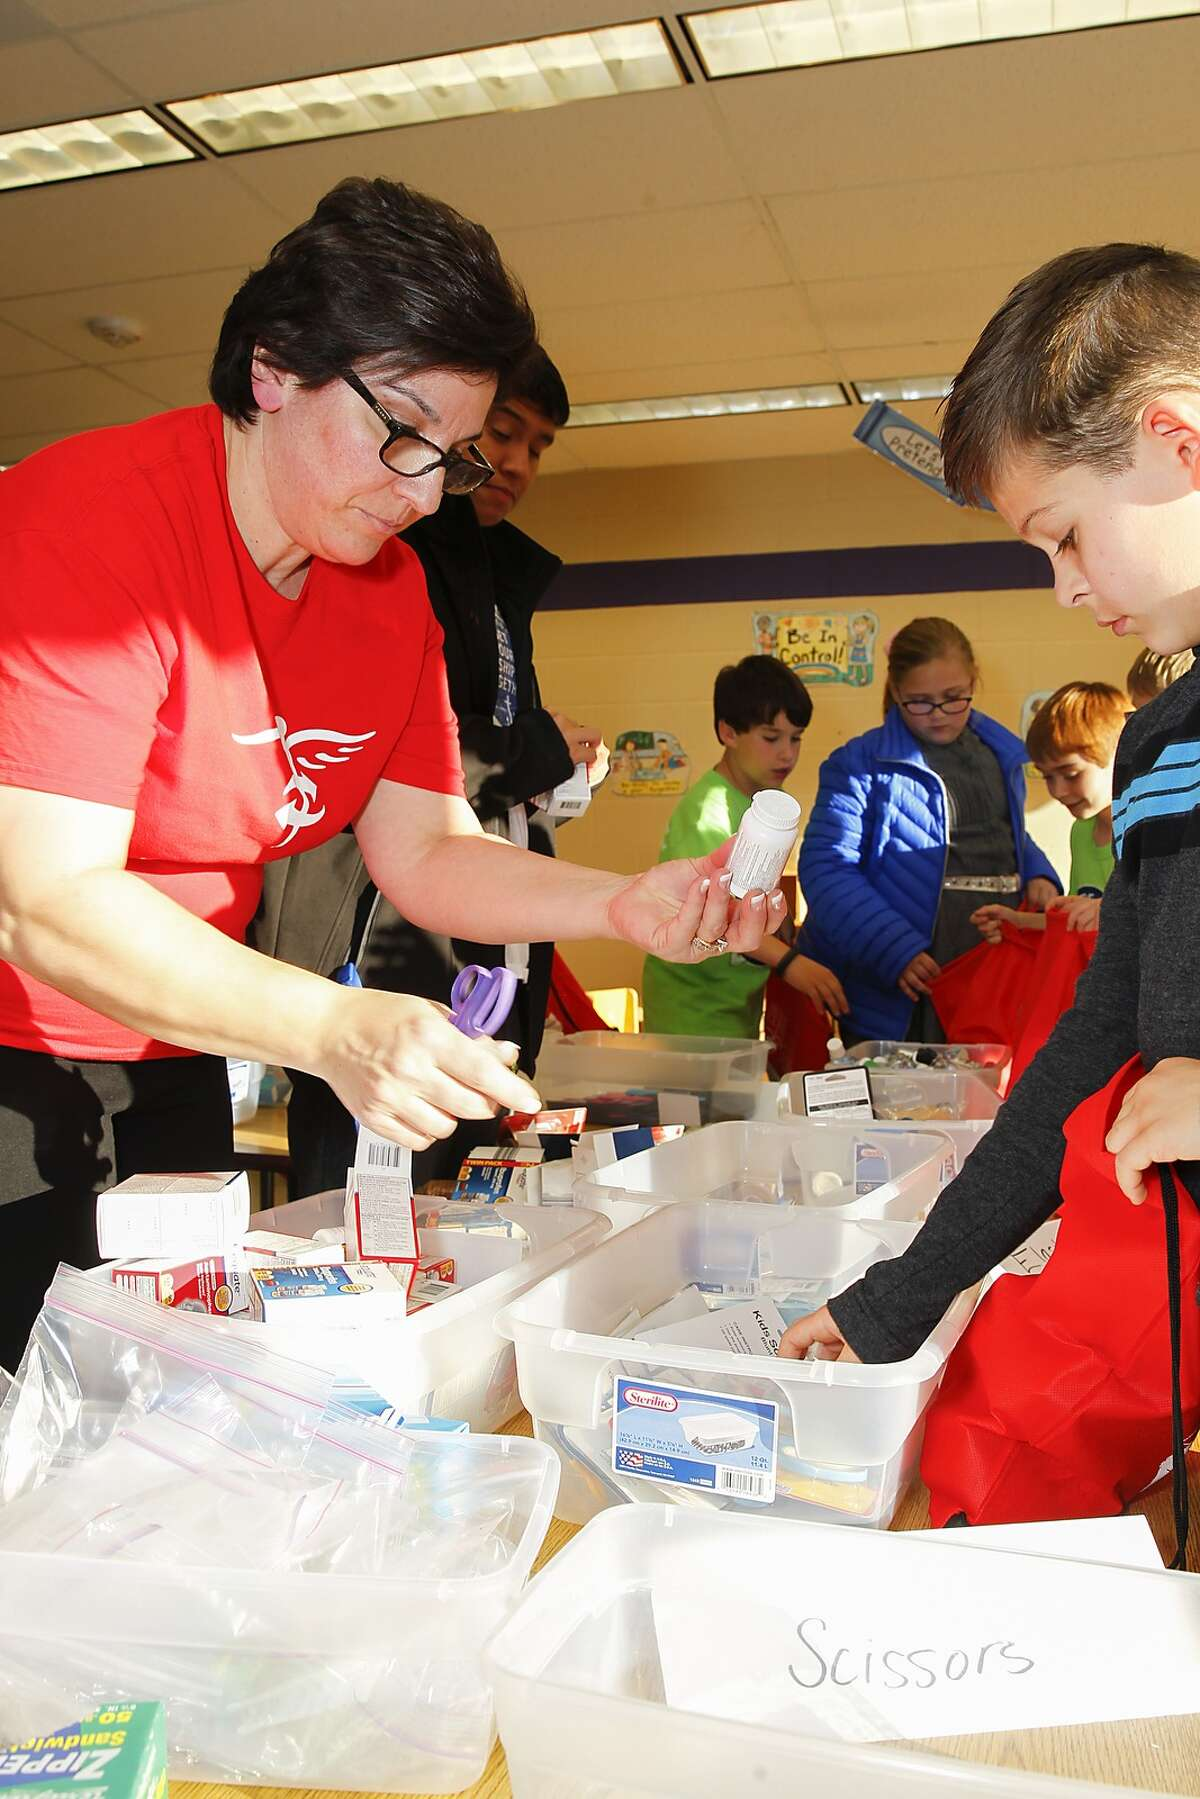 Janet Thomason, a parent volunteer, assists Michael Bone, a fifth-grader at Pattison Elementary School in Katy, in packing medical kits on Nov. 17 for the Katy for Kids project. The project will send kits all over the world and is sponsored by the James E. Taylor High School National Honor Society.Janet Thomason, a parent volunteer, assists Michael Bone, a fifth-grader at Pattison Elementary School in Katy, in packing medical kits on Nov. 17 for the Katy for Kids project. The project will send kits all over the world and is sponsored by the James E. Taylor High School National Honor Society.